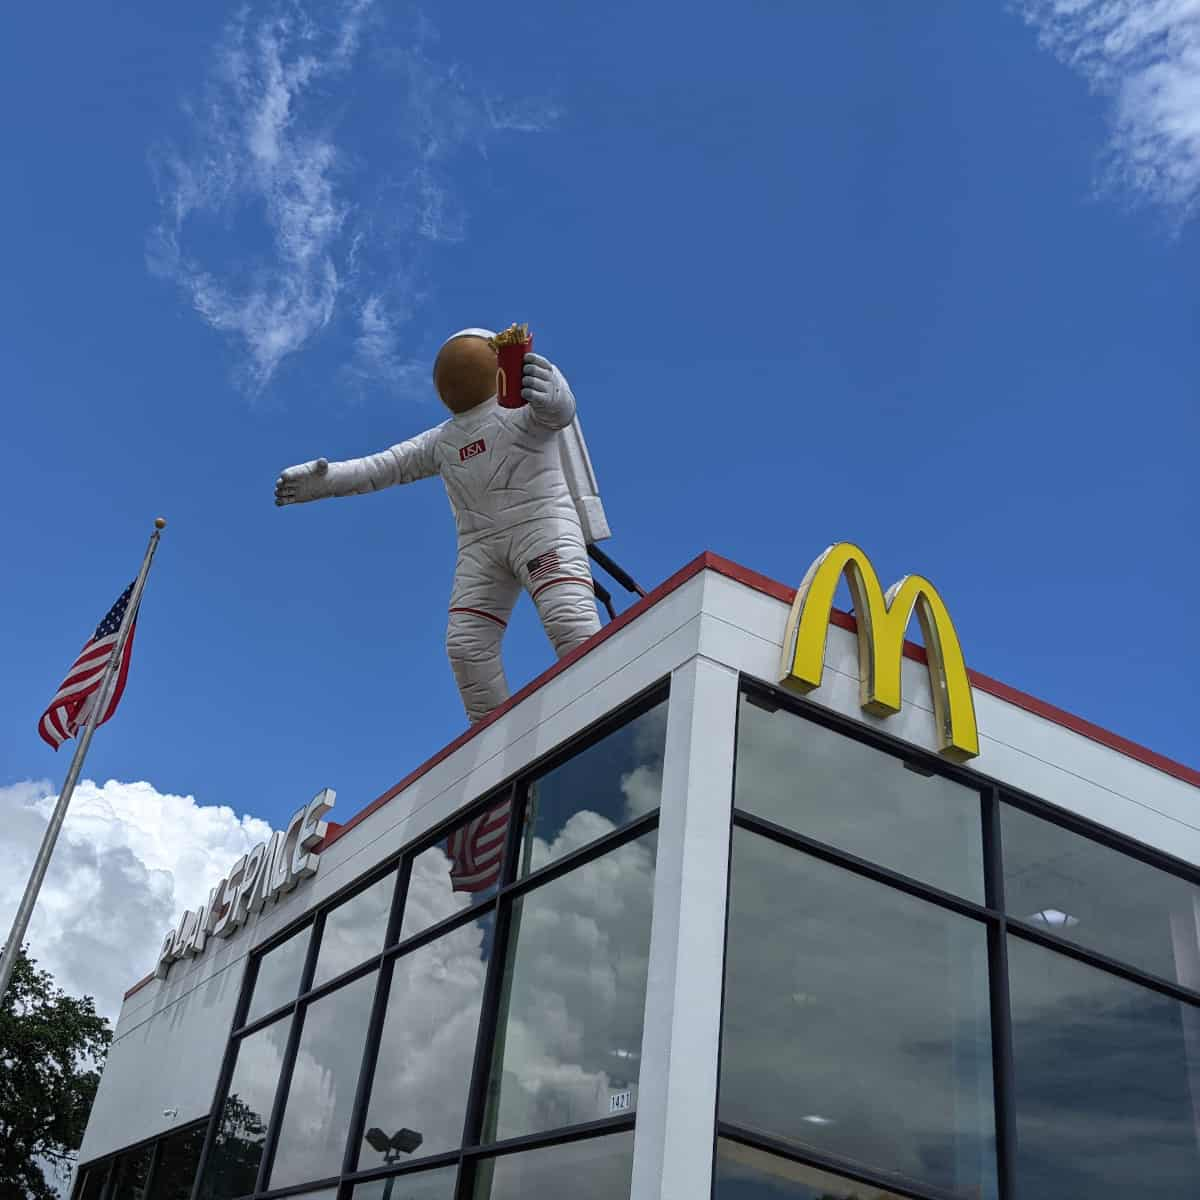 McDonalds by Space Center Houston